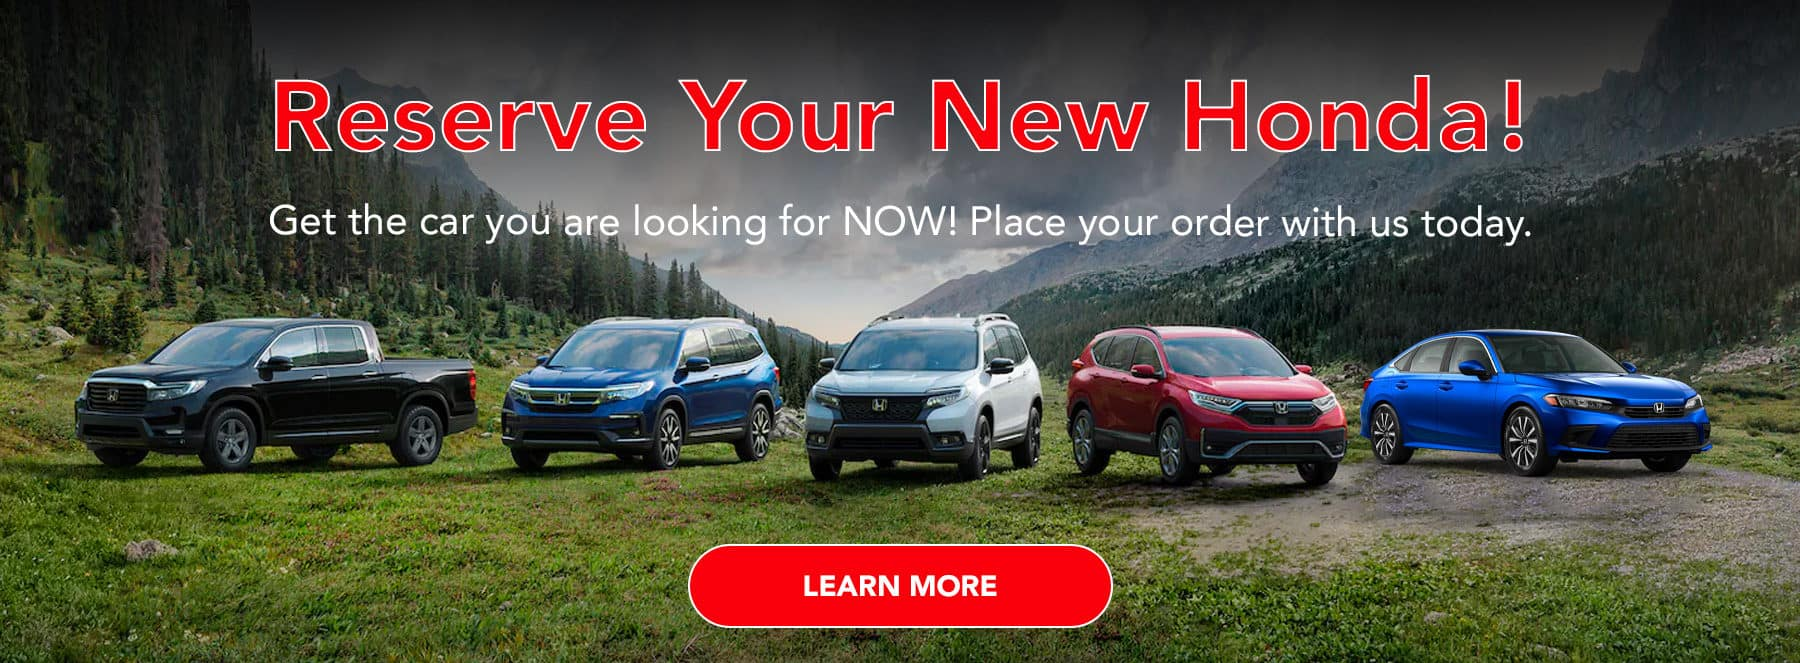 Get the car you're looking for, on your terms, at the best possible price! Place your order with us and we will work out your financing plan.